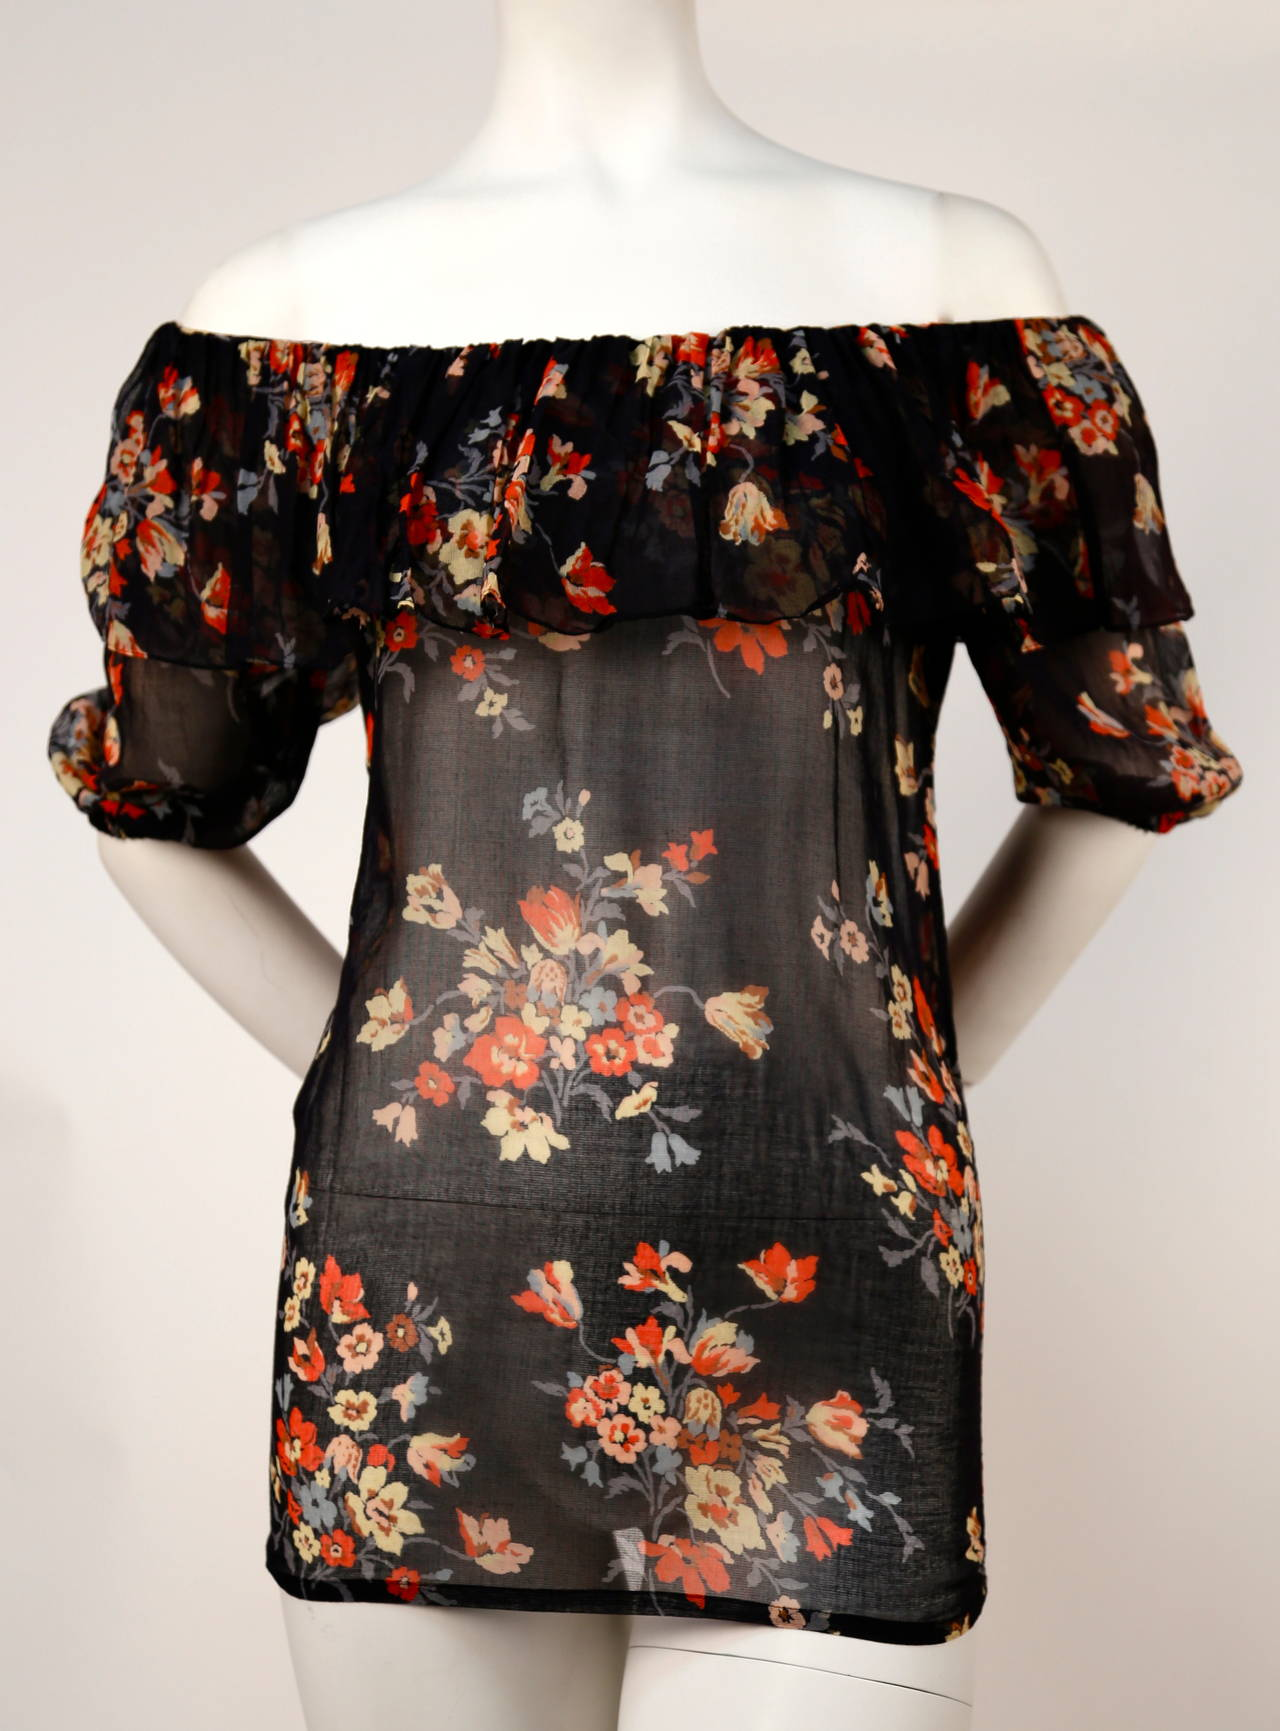 1970's YVES SAINT LAURENT floral gauzy peasant blouse with flounced neckline In Good Condition For Sale In San Francisco, CA